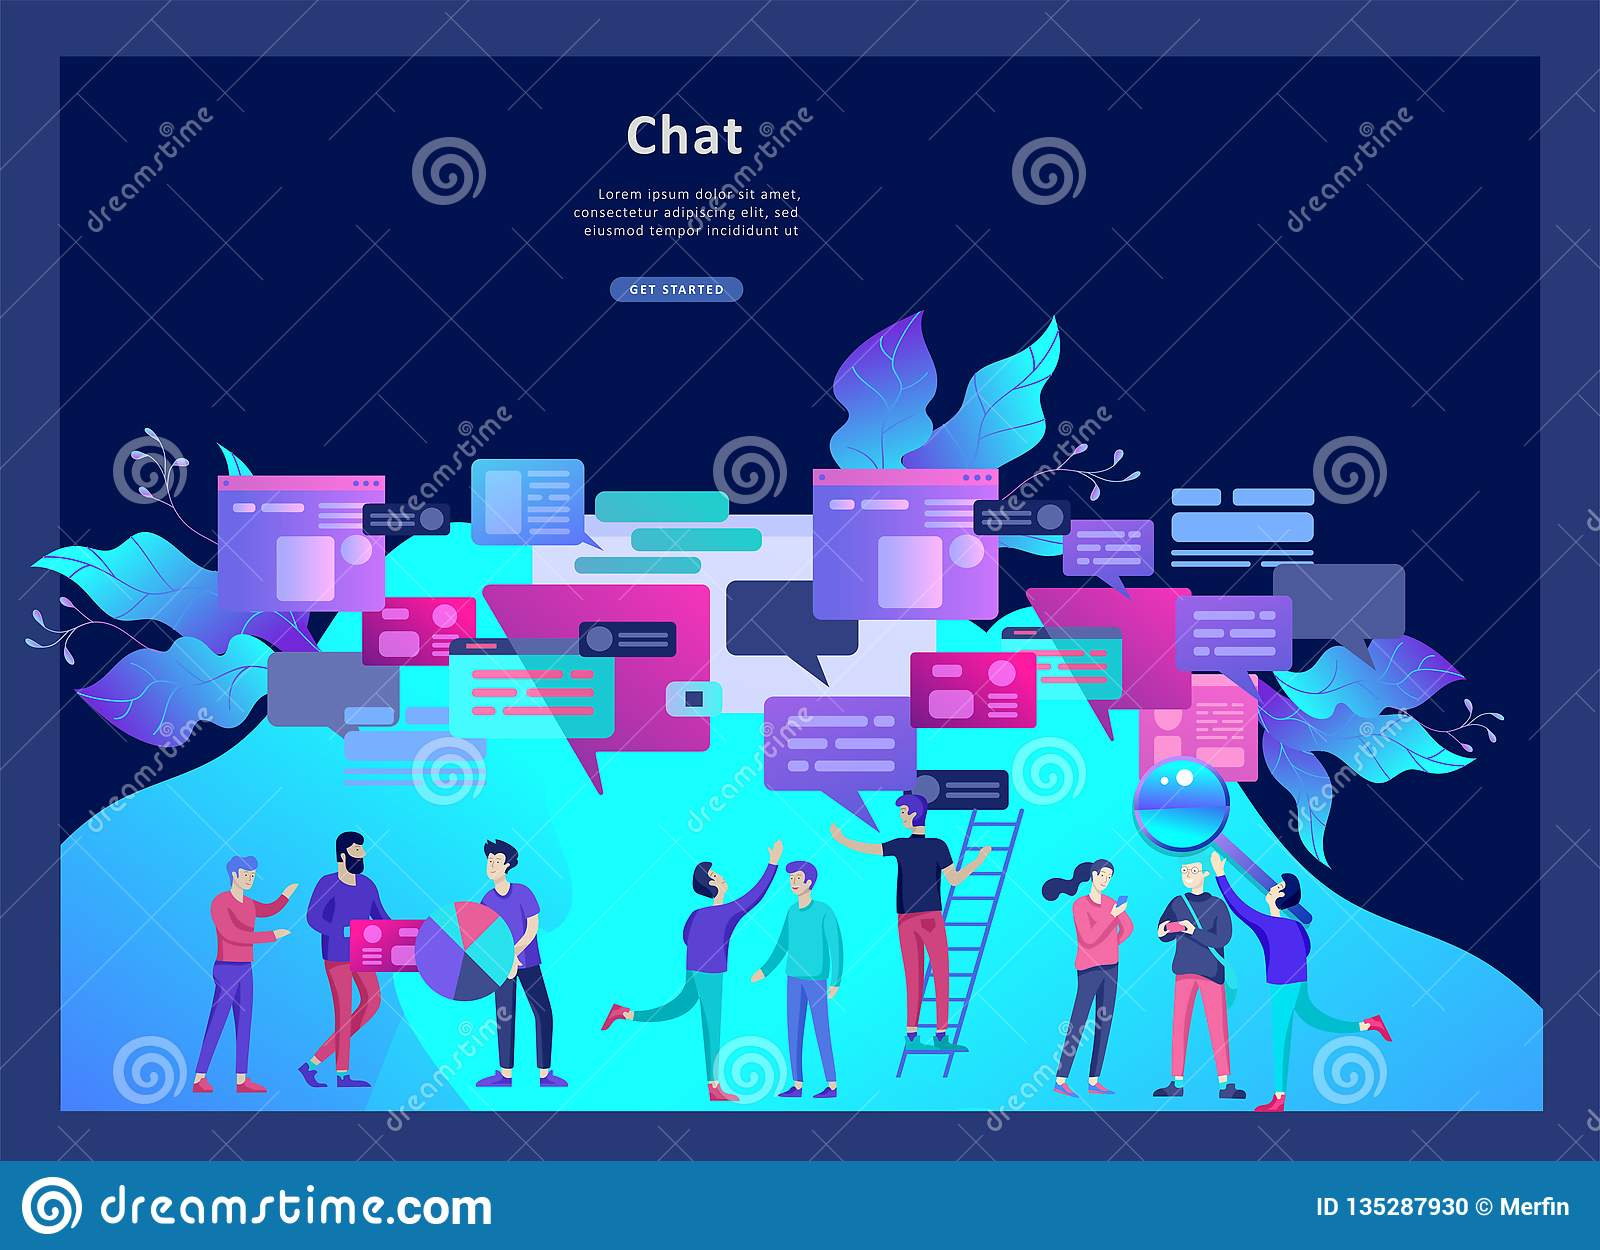 Concept Landing Page Template, Flat Style, Businessmen Discuss